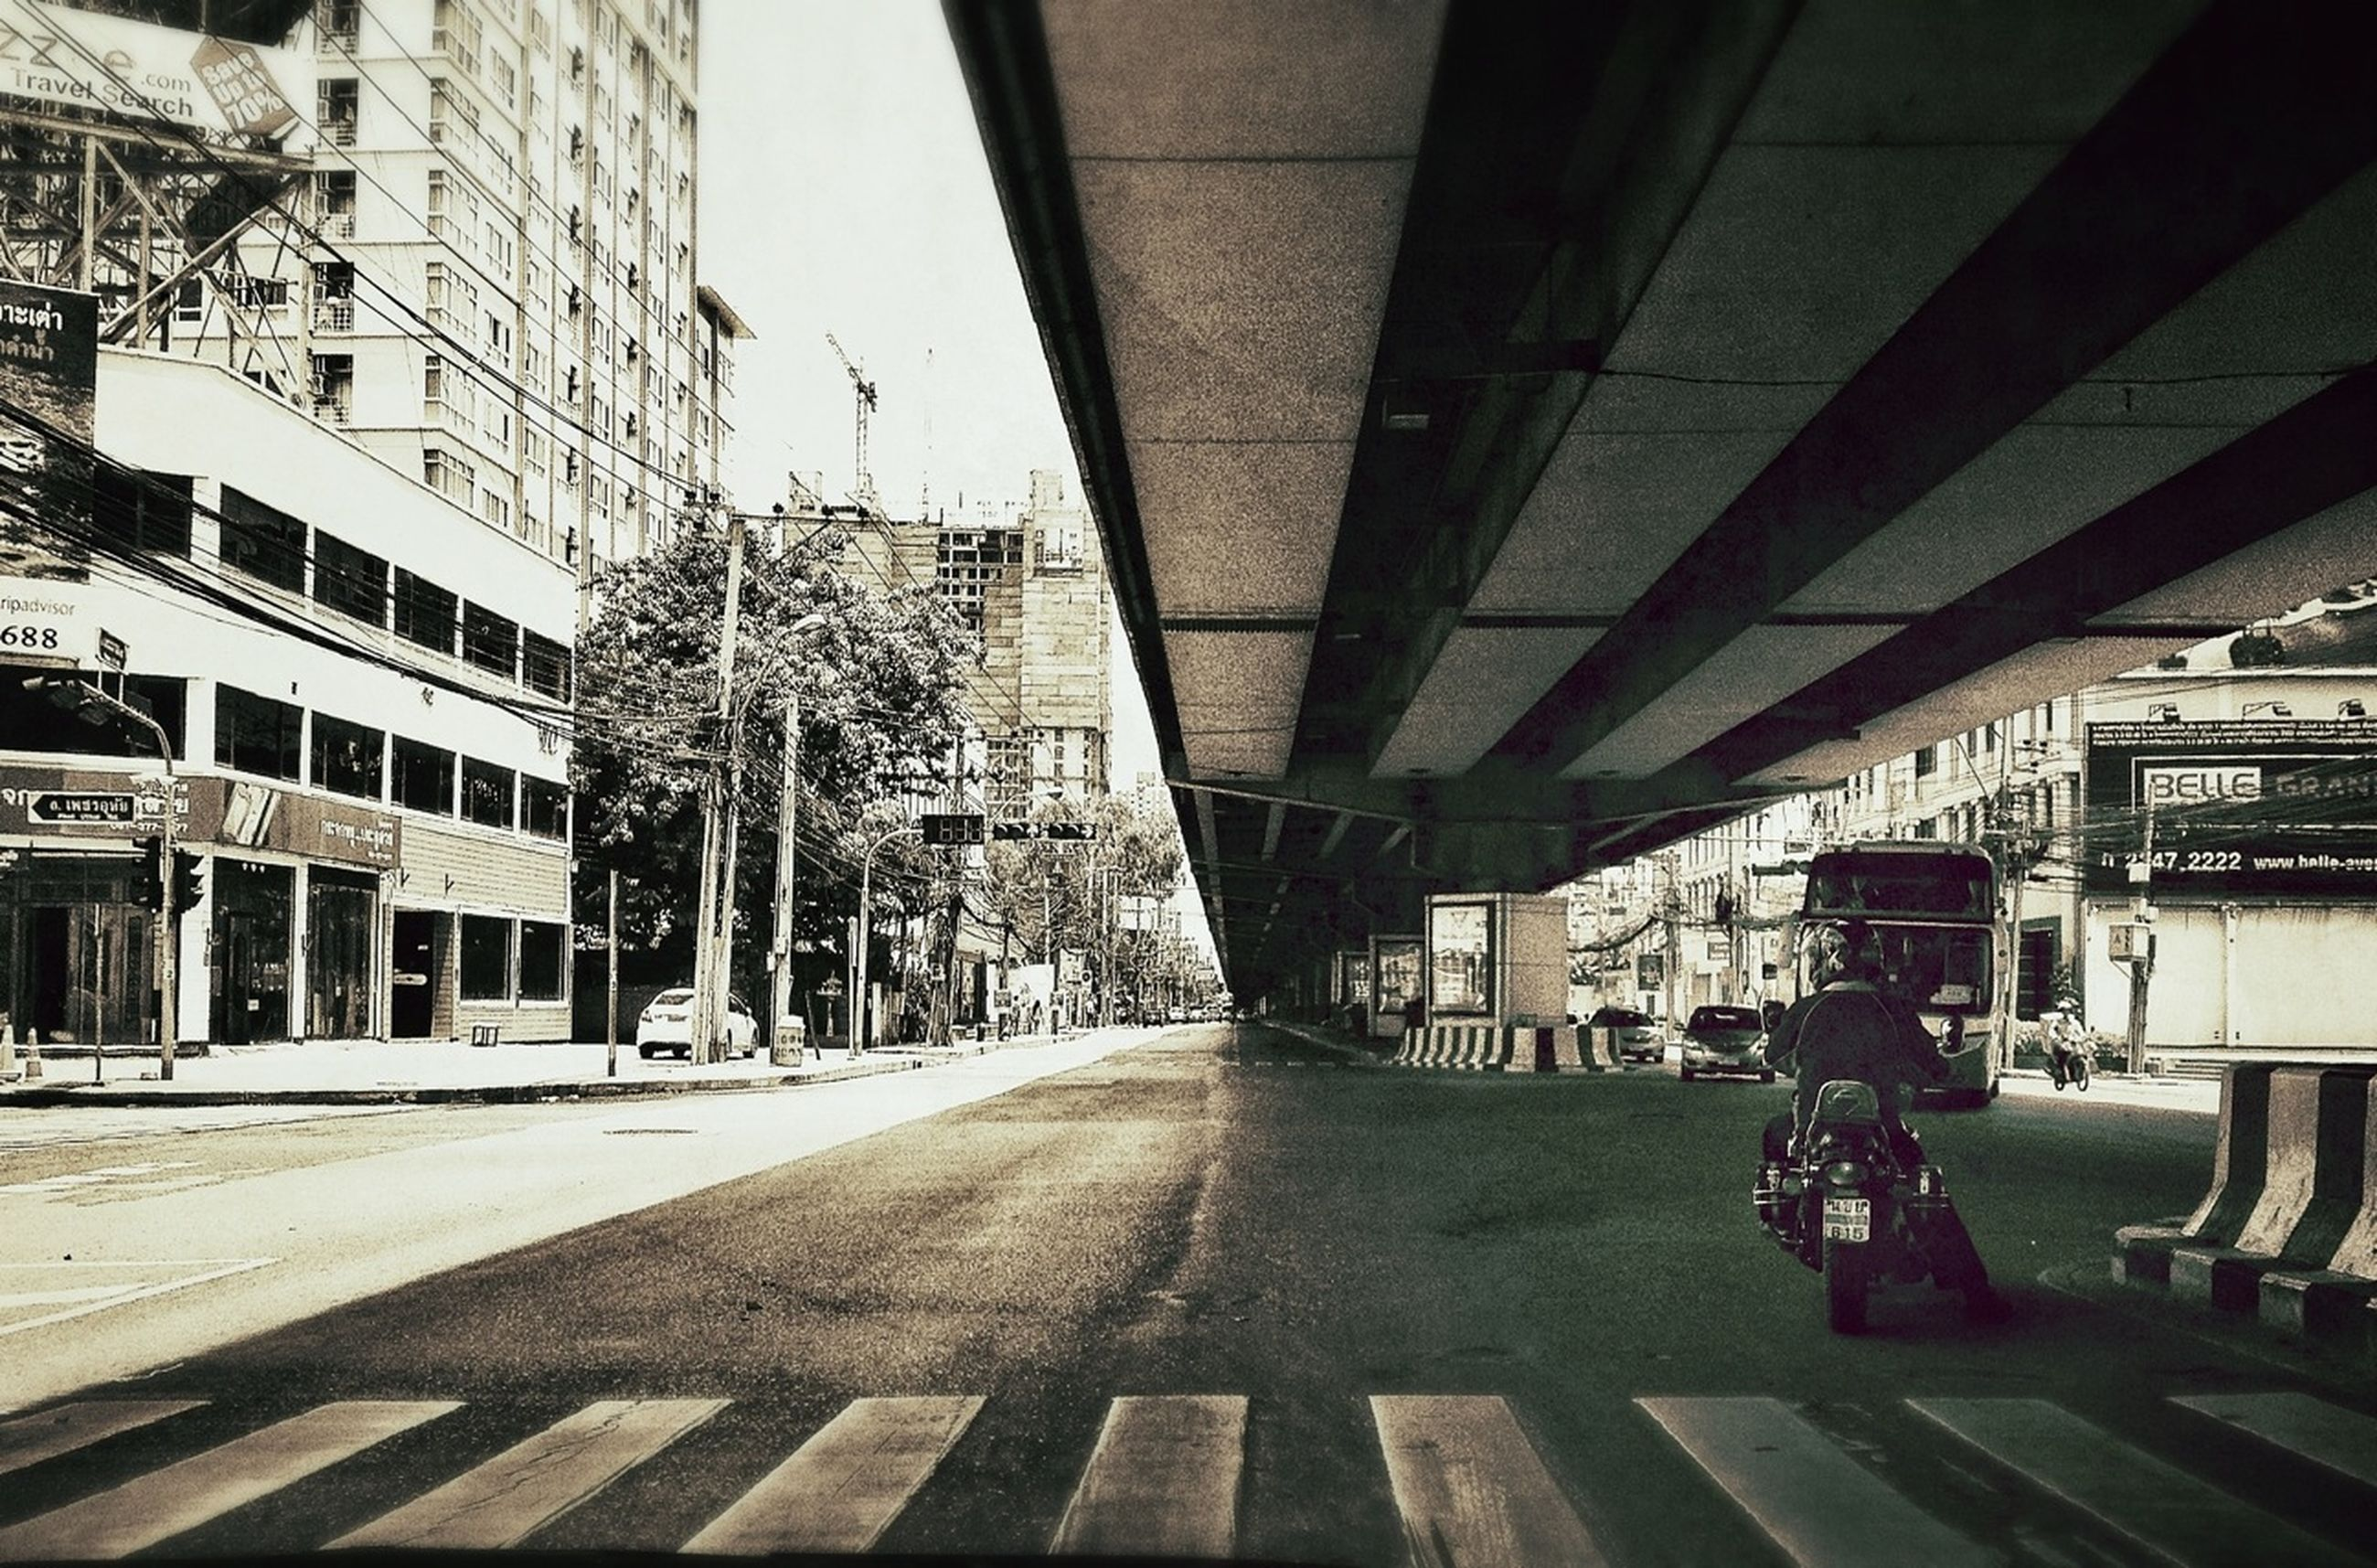 architecture, built structure, building exterior, the way forward, city, transportation, diminishing perspective, building, vanishing point, incidental people, street, city life, day, residential building, residential structure, outdoors, empty, sunlight, railroad track, no people